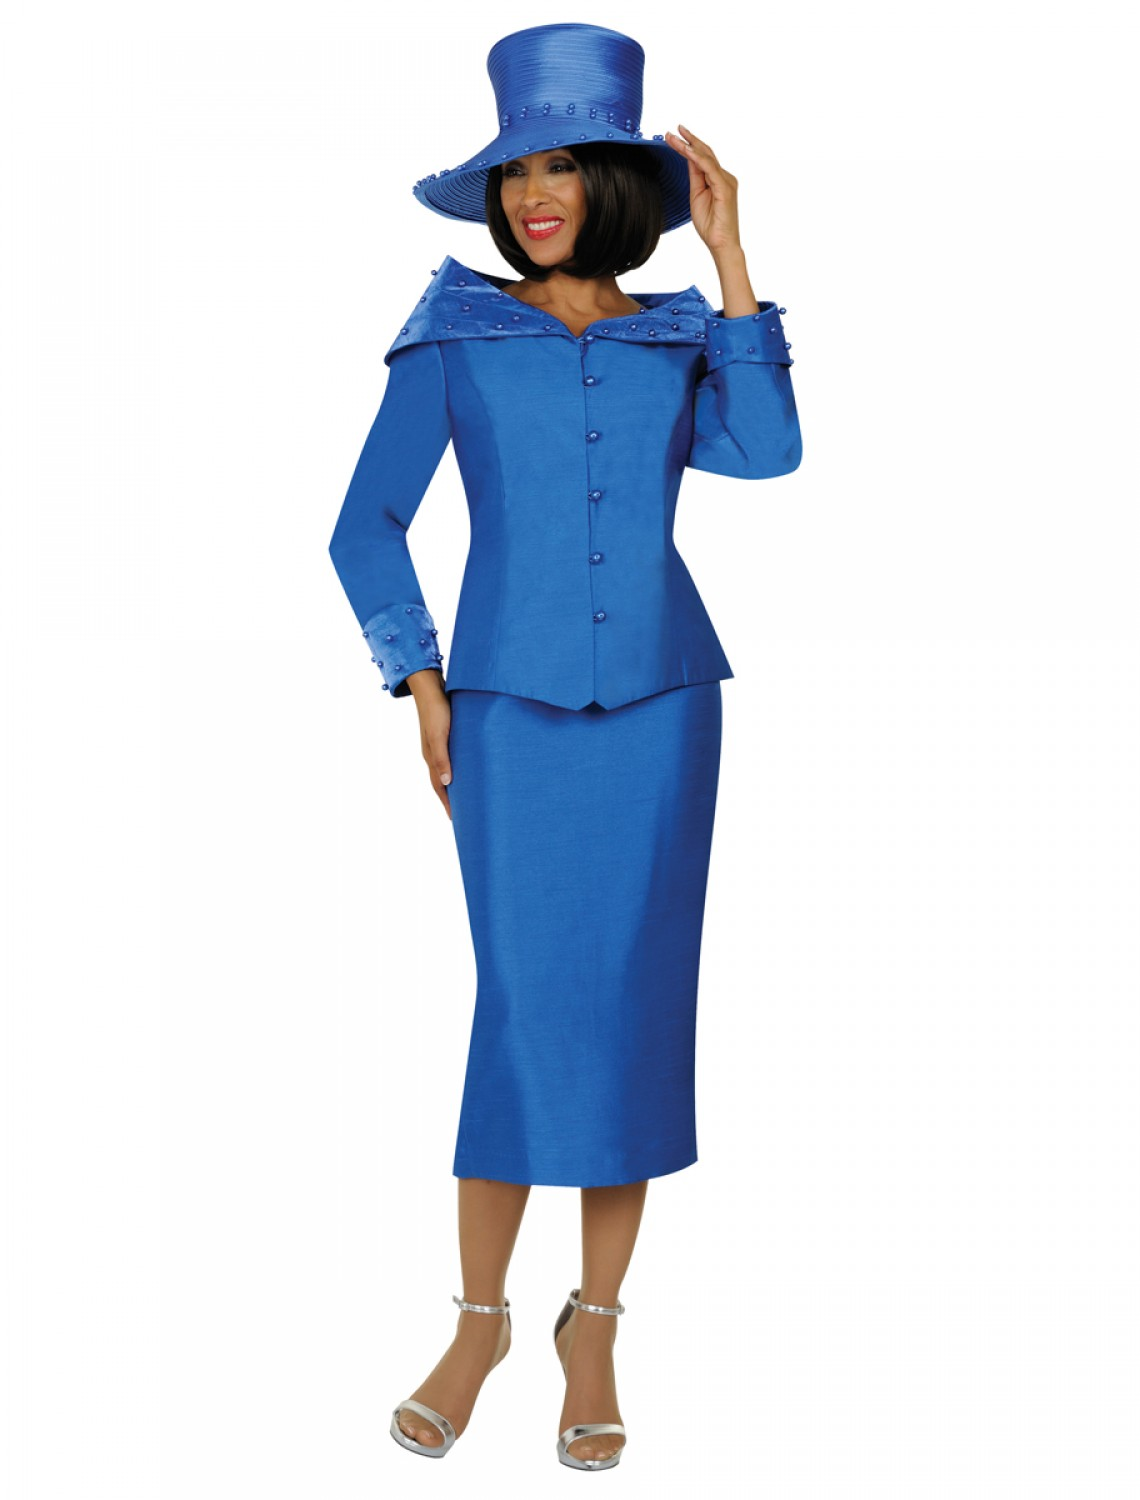 women church suits church suits : g4802. featured image style#g4802 ebmmejh